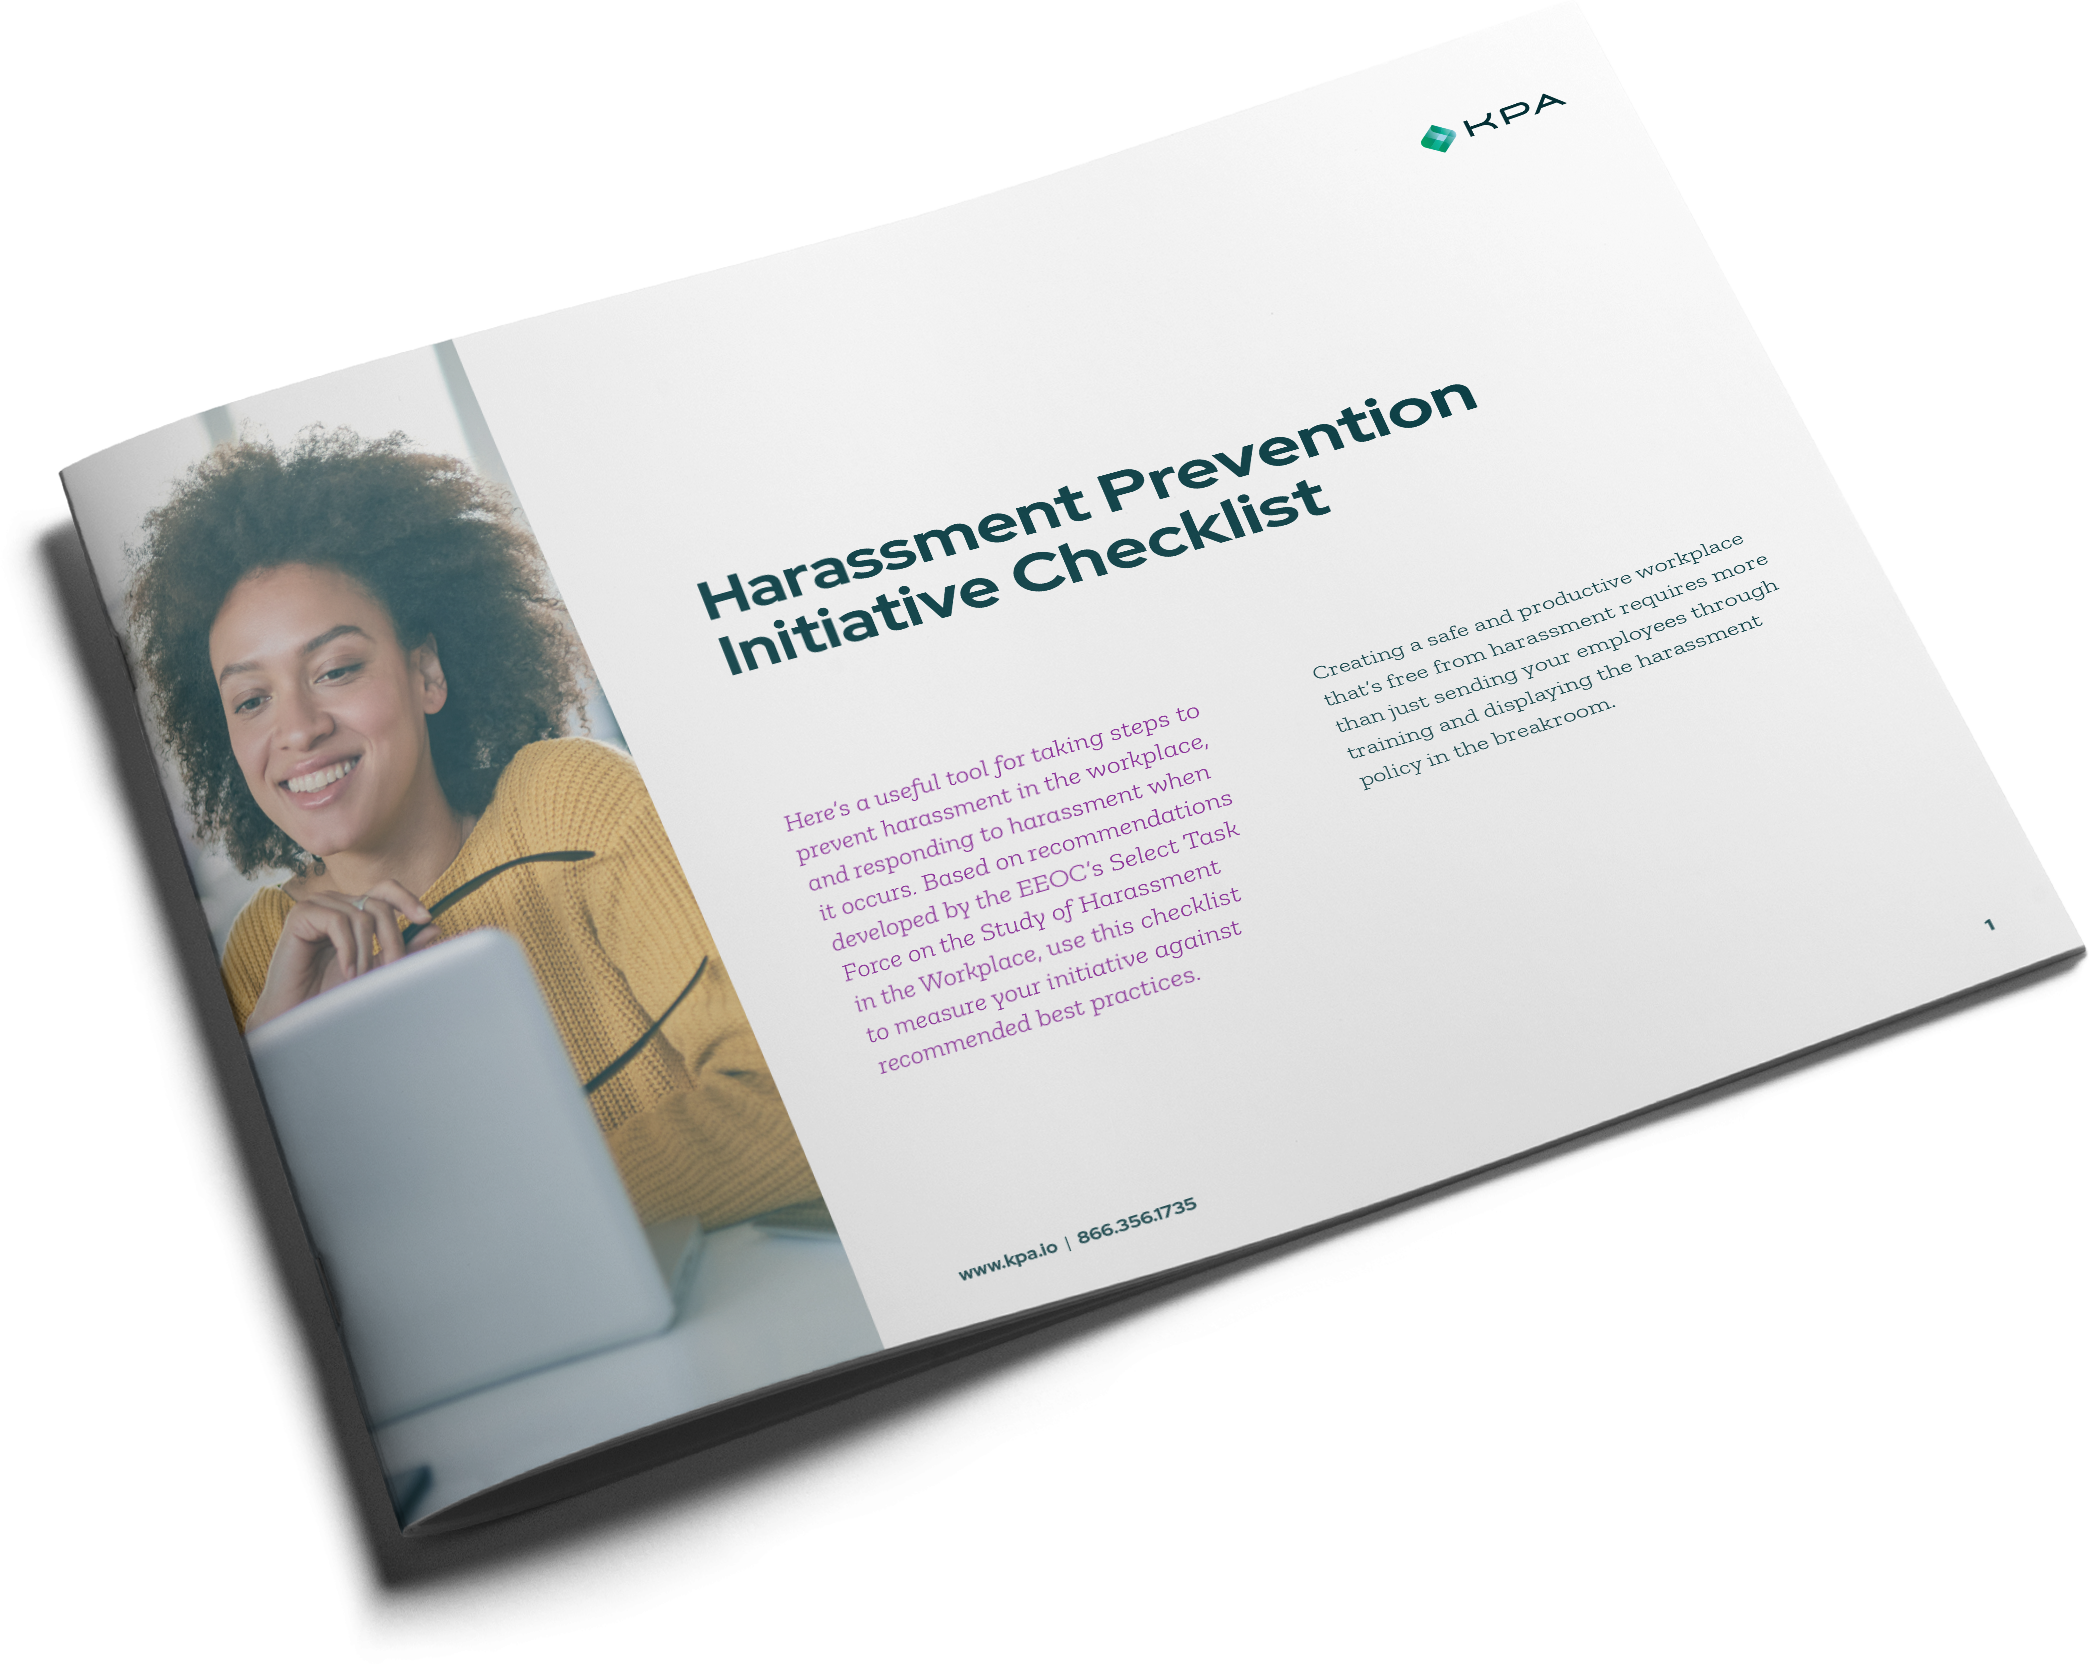 Harassment Prevention Initiative Checklist booklet cover